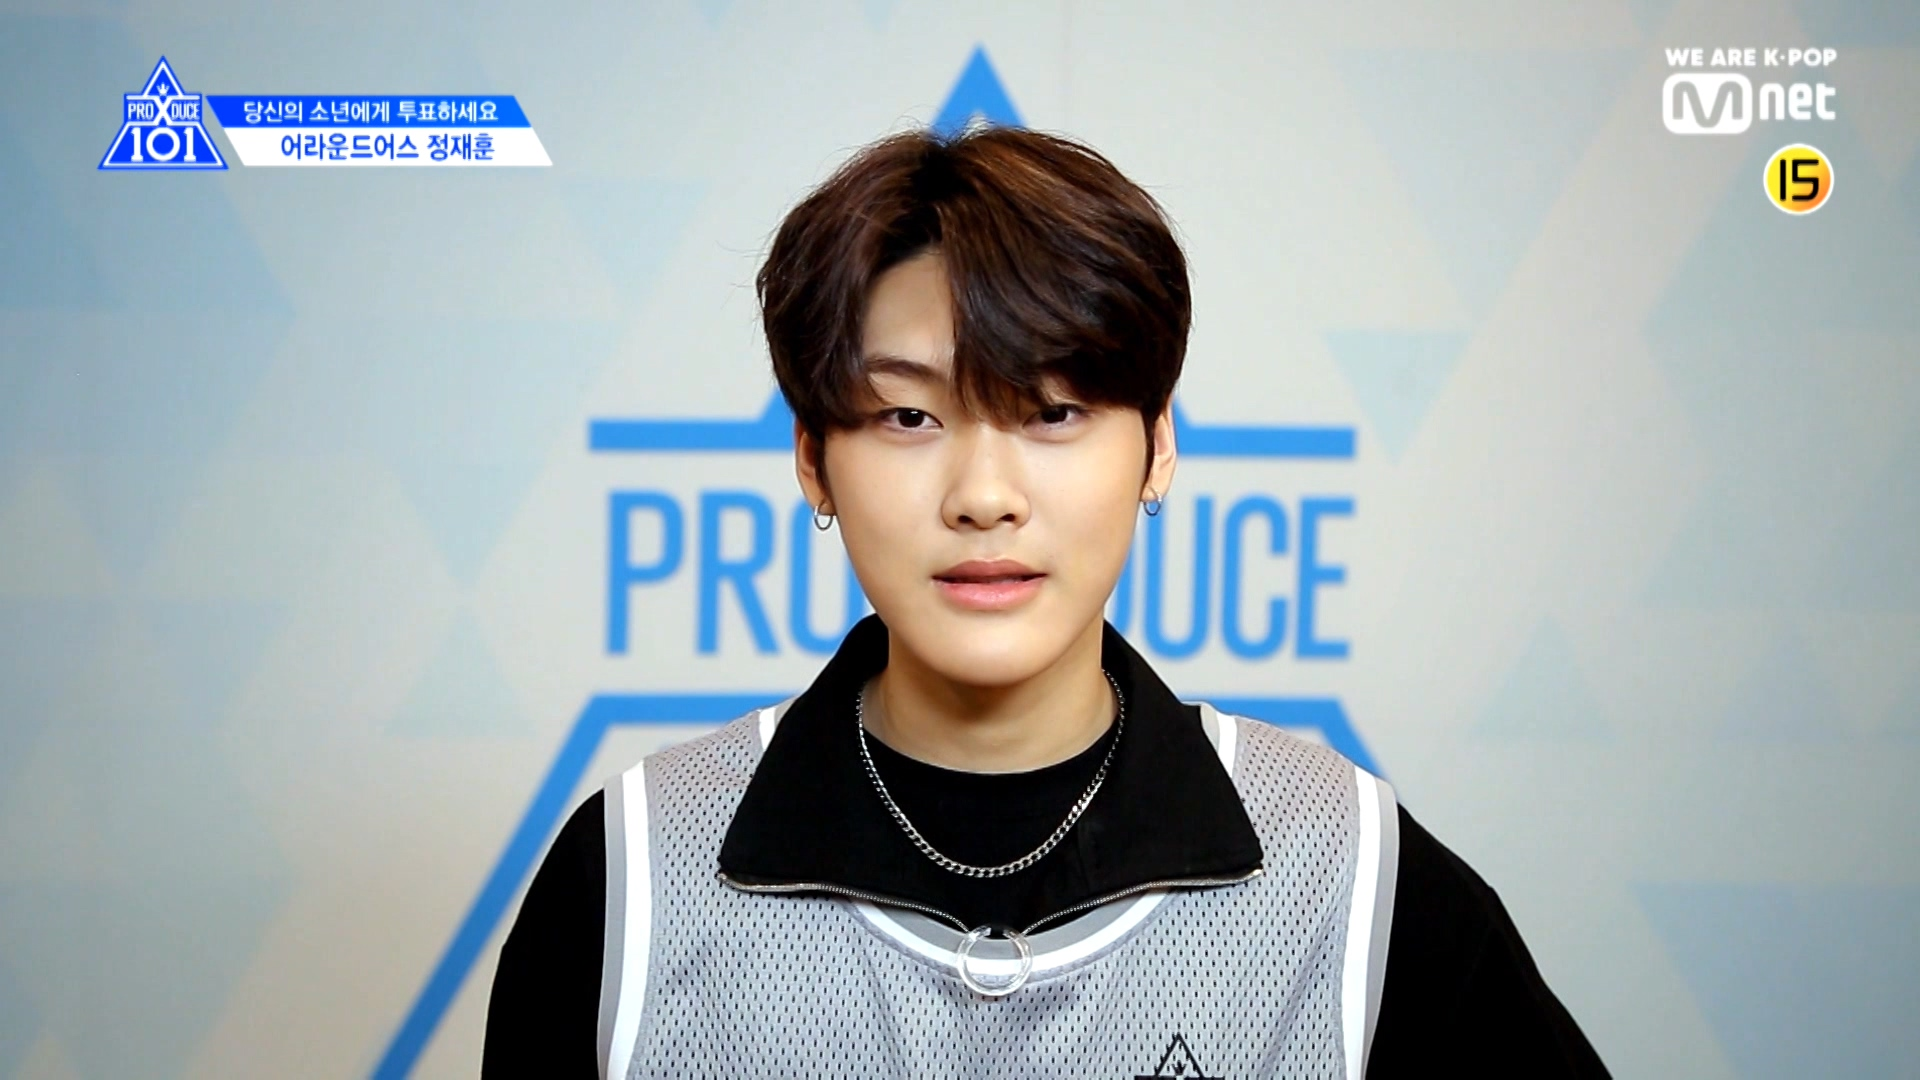 [PRODUCE X 101] EYE CONTACT CHALLENGE l JEONG JAE HUN(Around US)